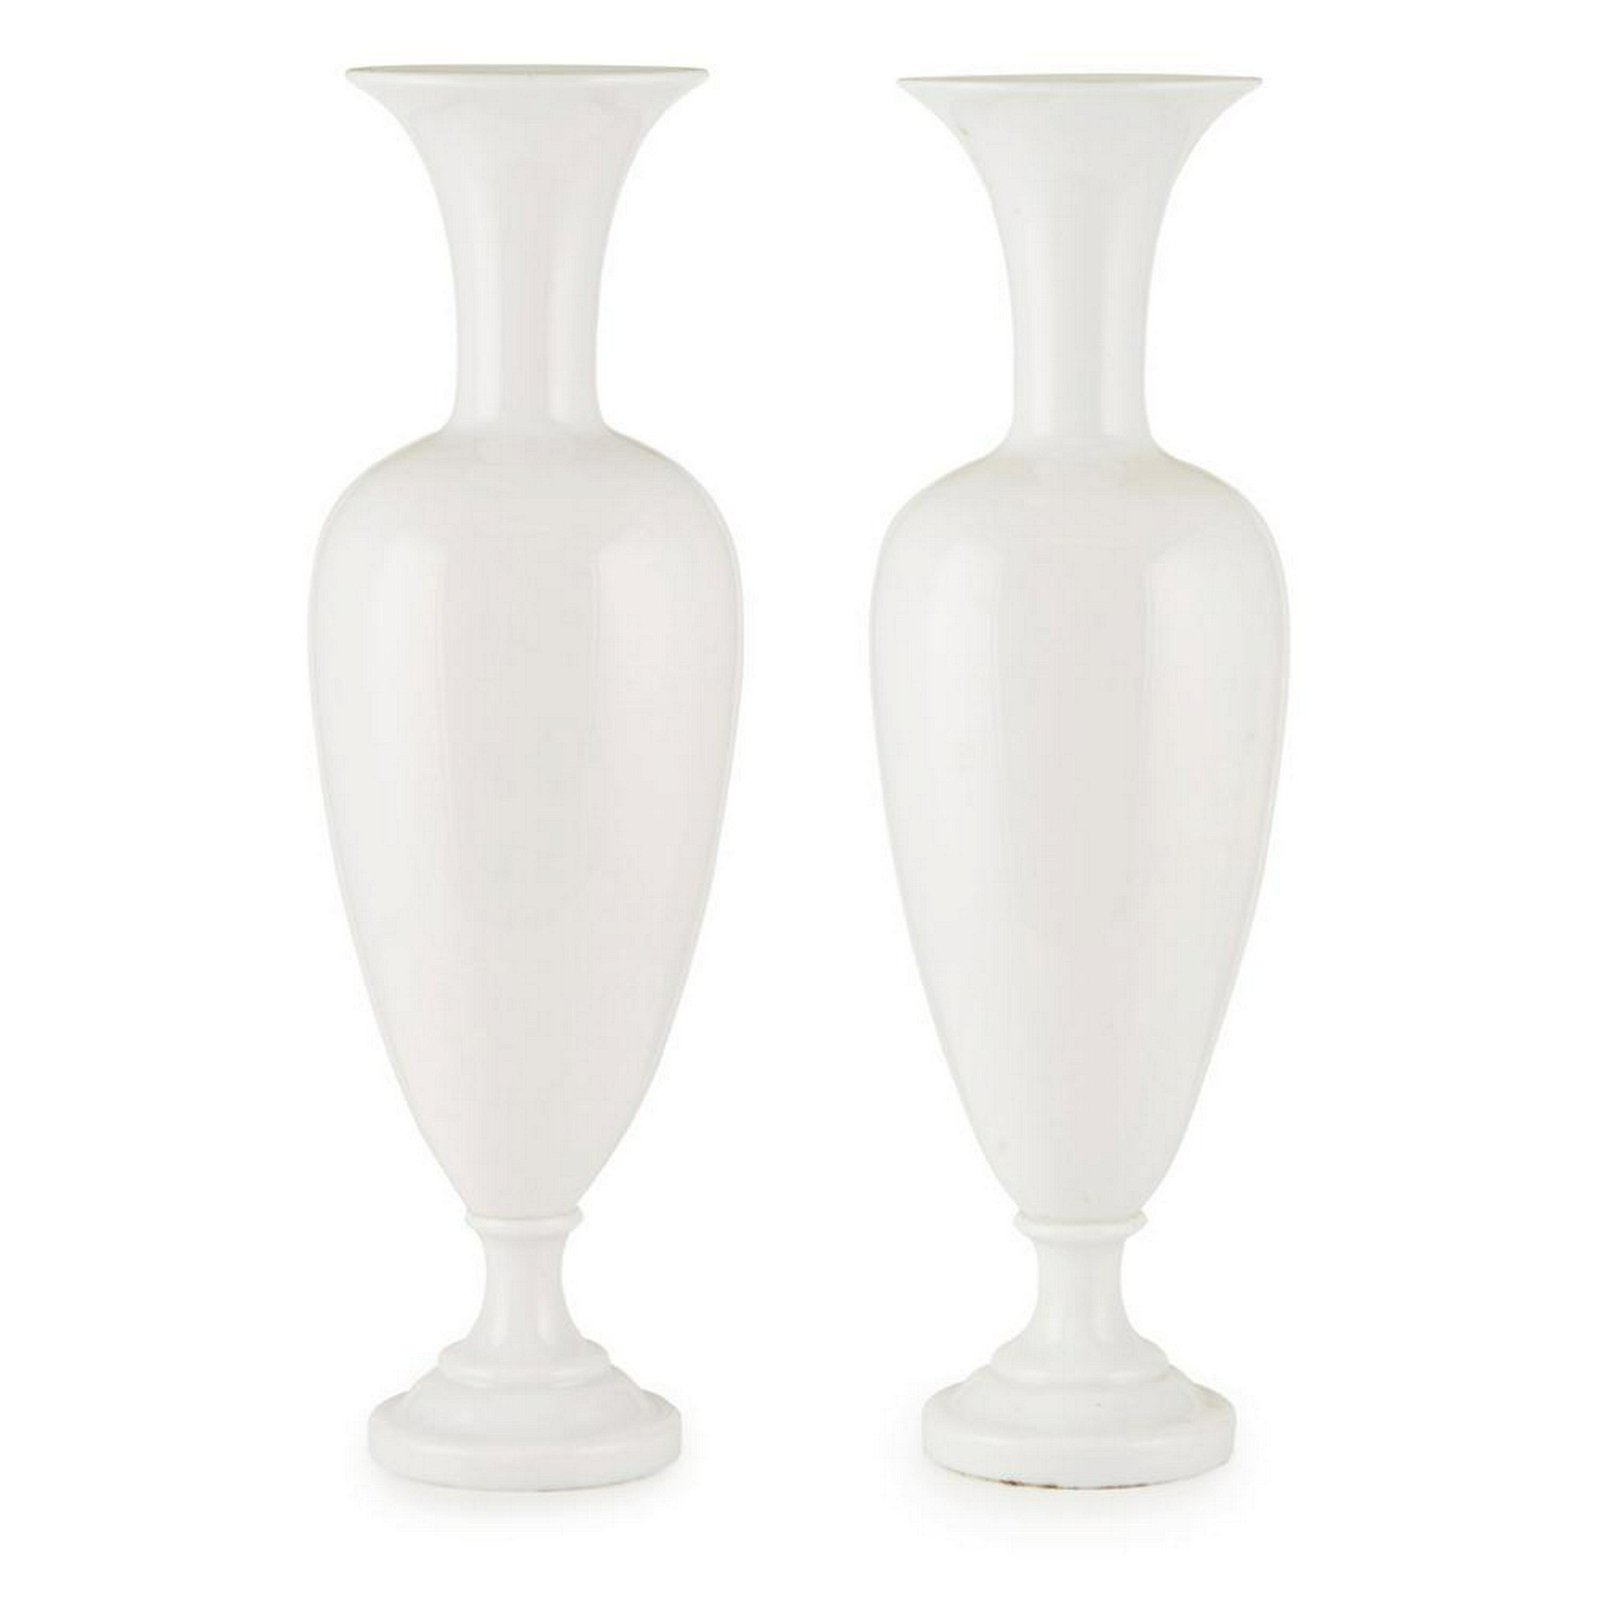 PAIR OF LARGE FRENCH OPALINE GLASS VASES, ATTRIBUTED TO